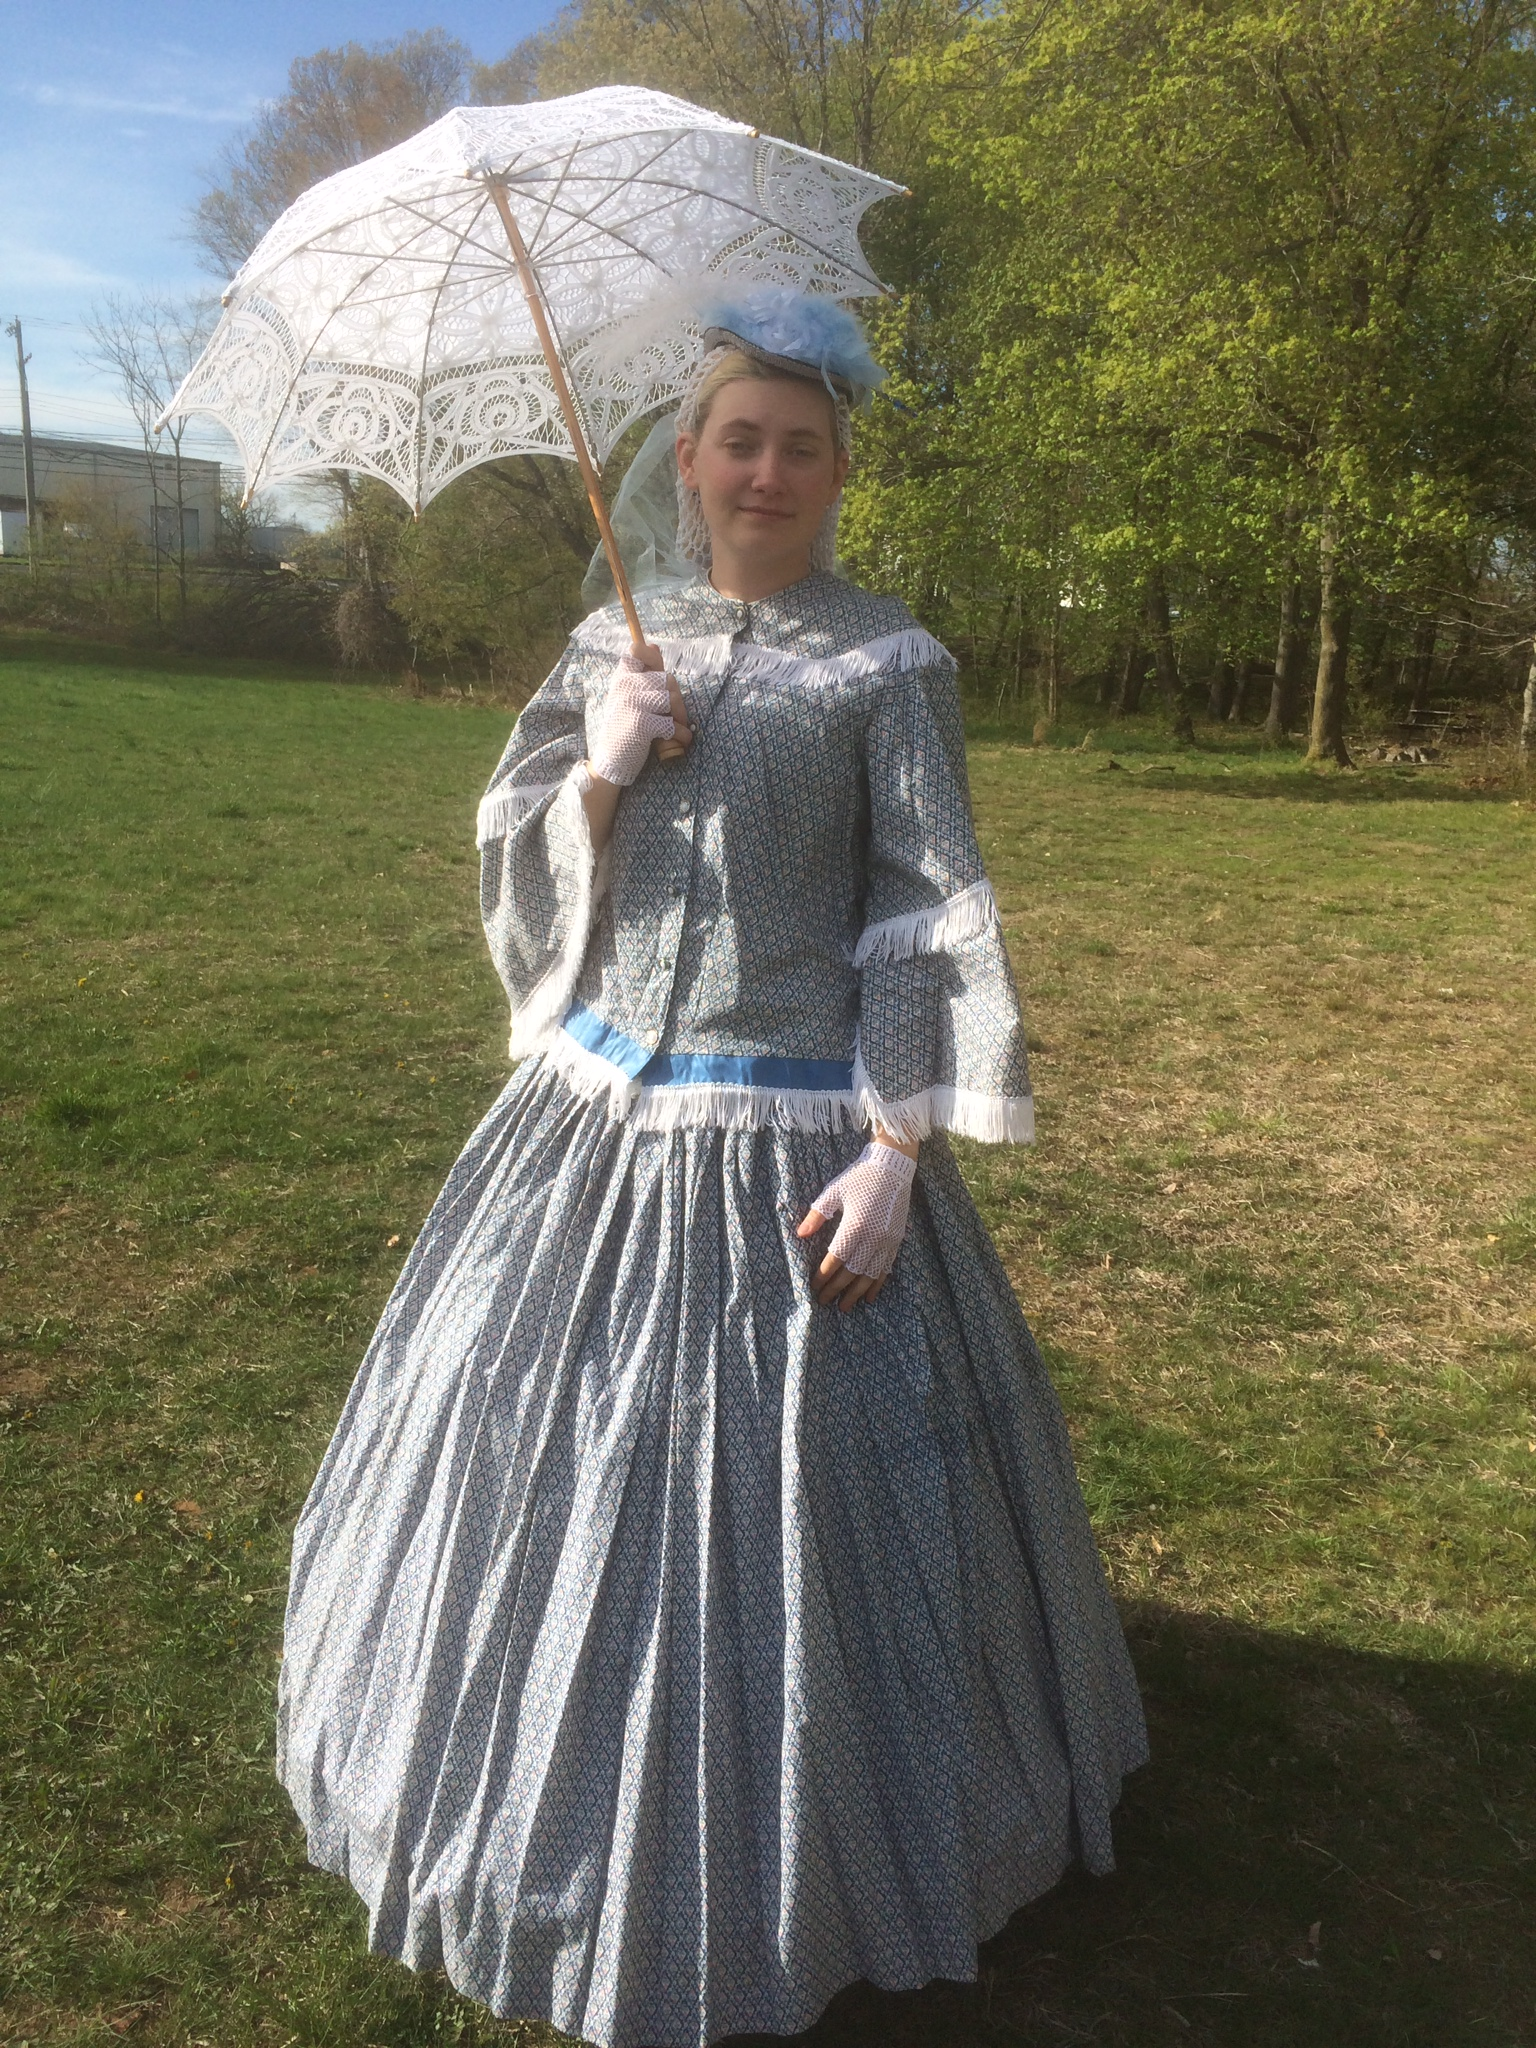 A 19th century period riding dress